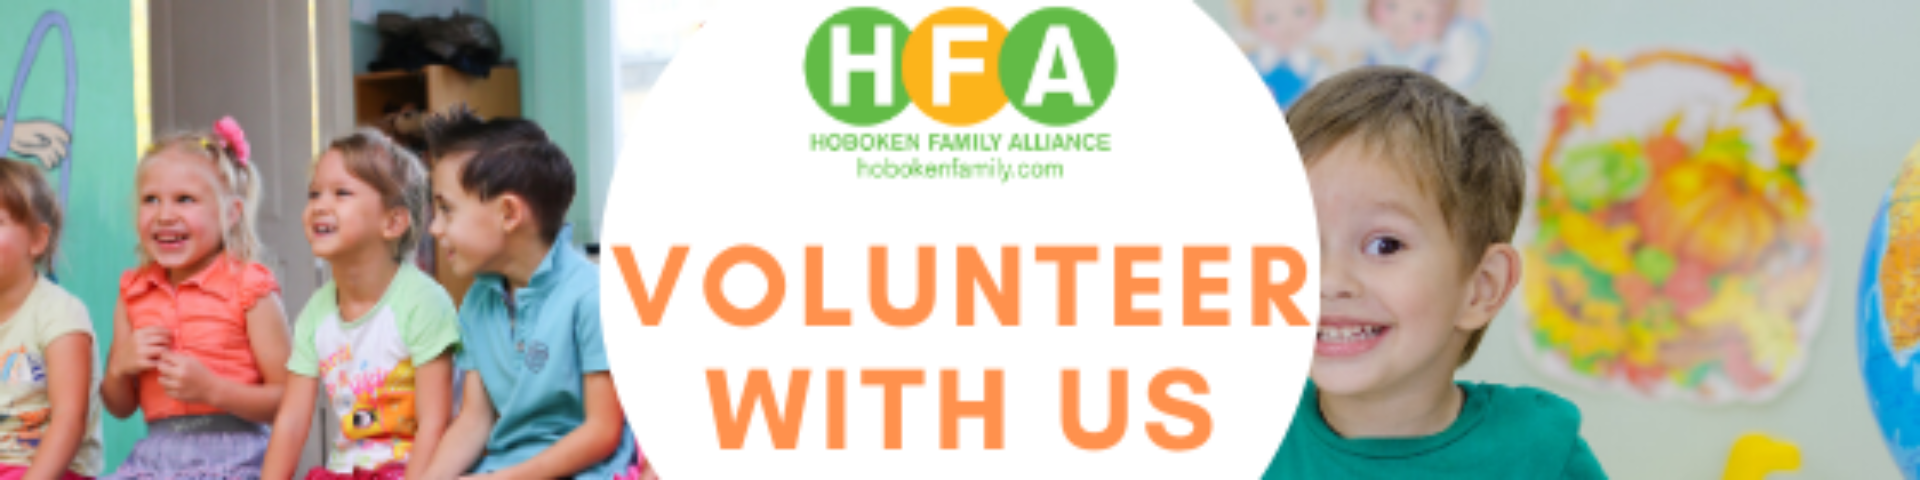 Hoboken Family Alliance